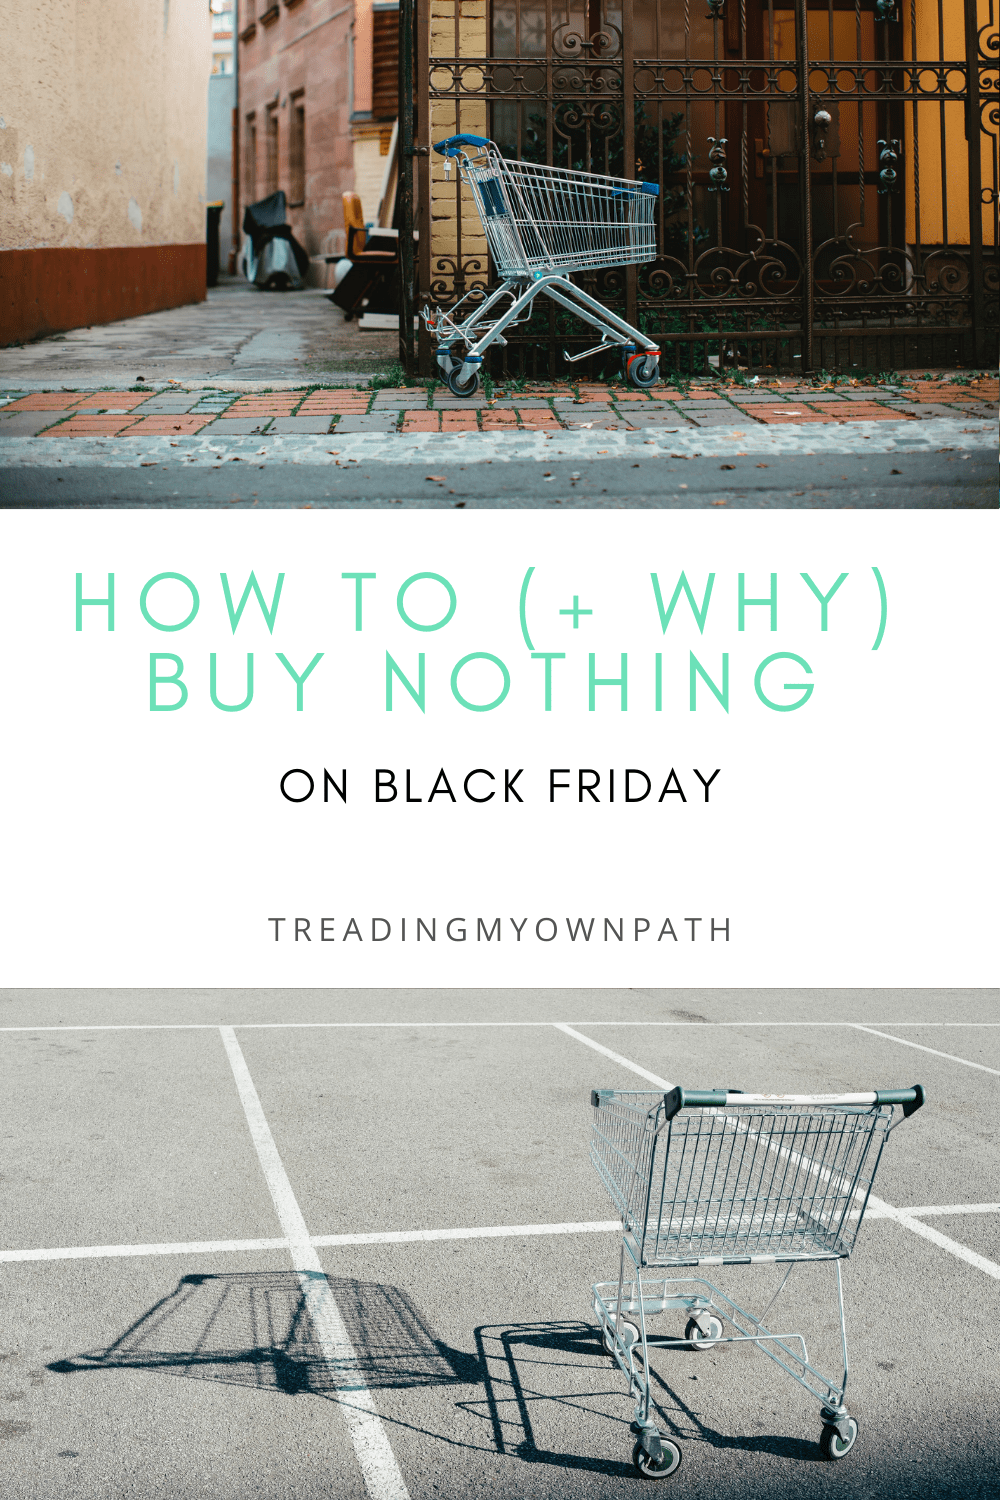 How to buy nothing on Black Friday